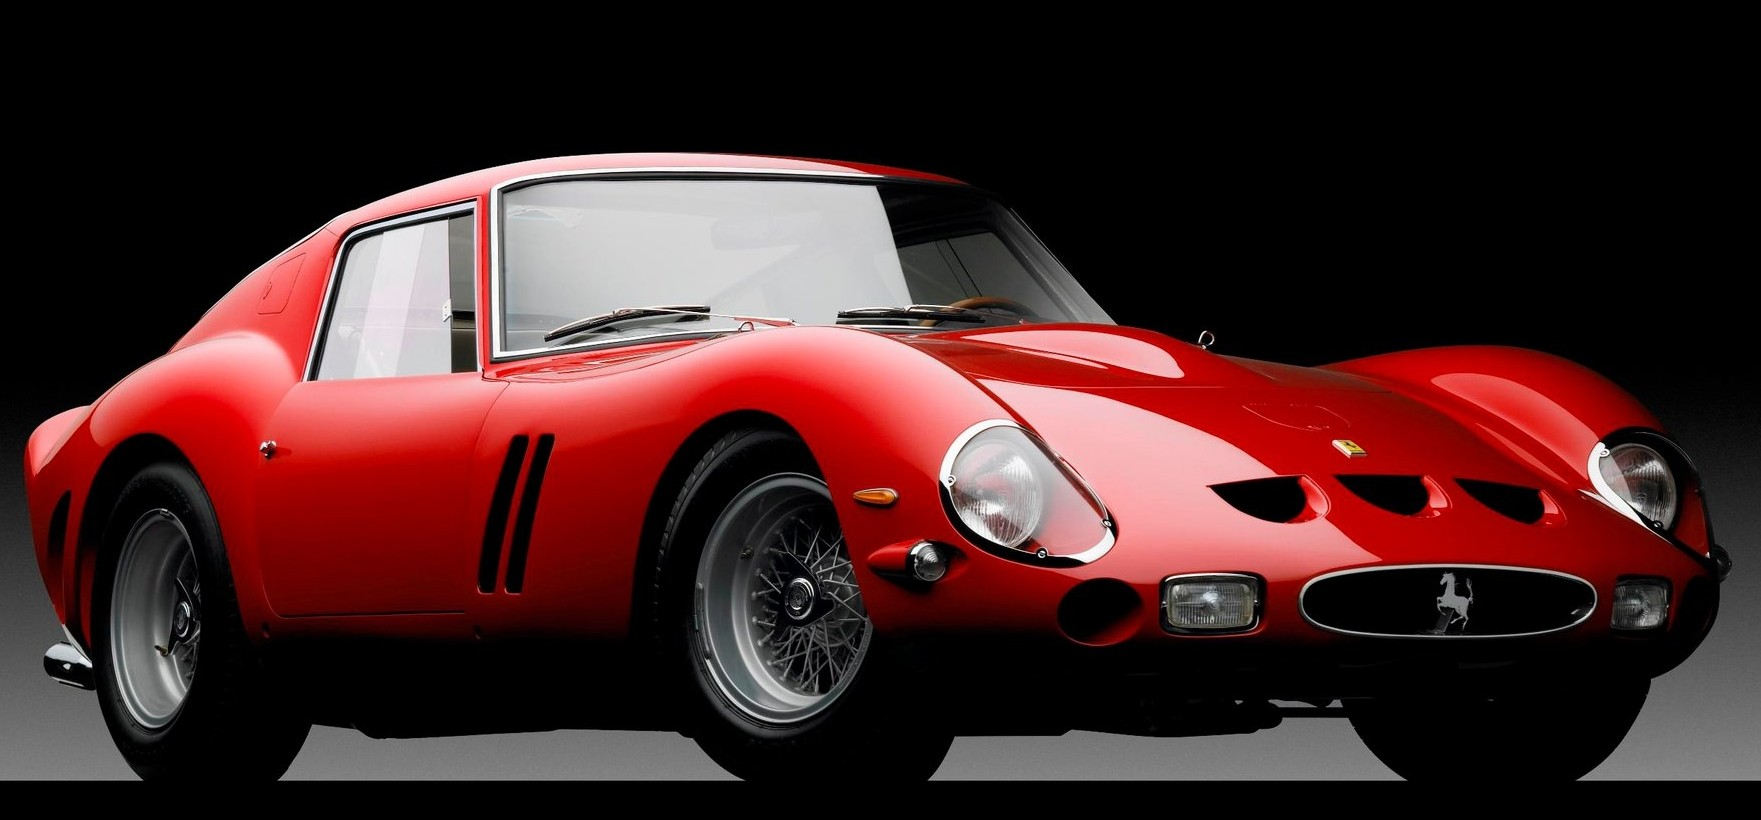 World's Most Expensive Car 1962 Ferrari 250 GTO Sold For $35 Million